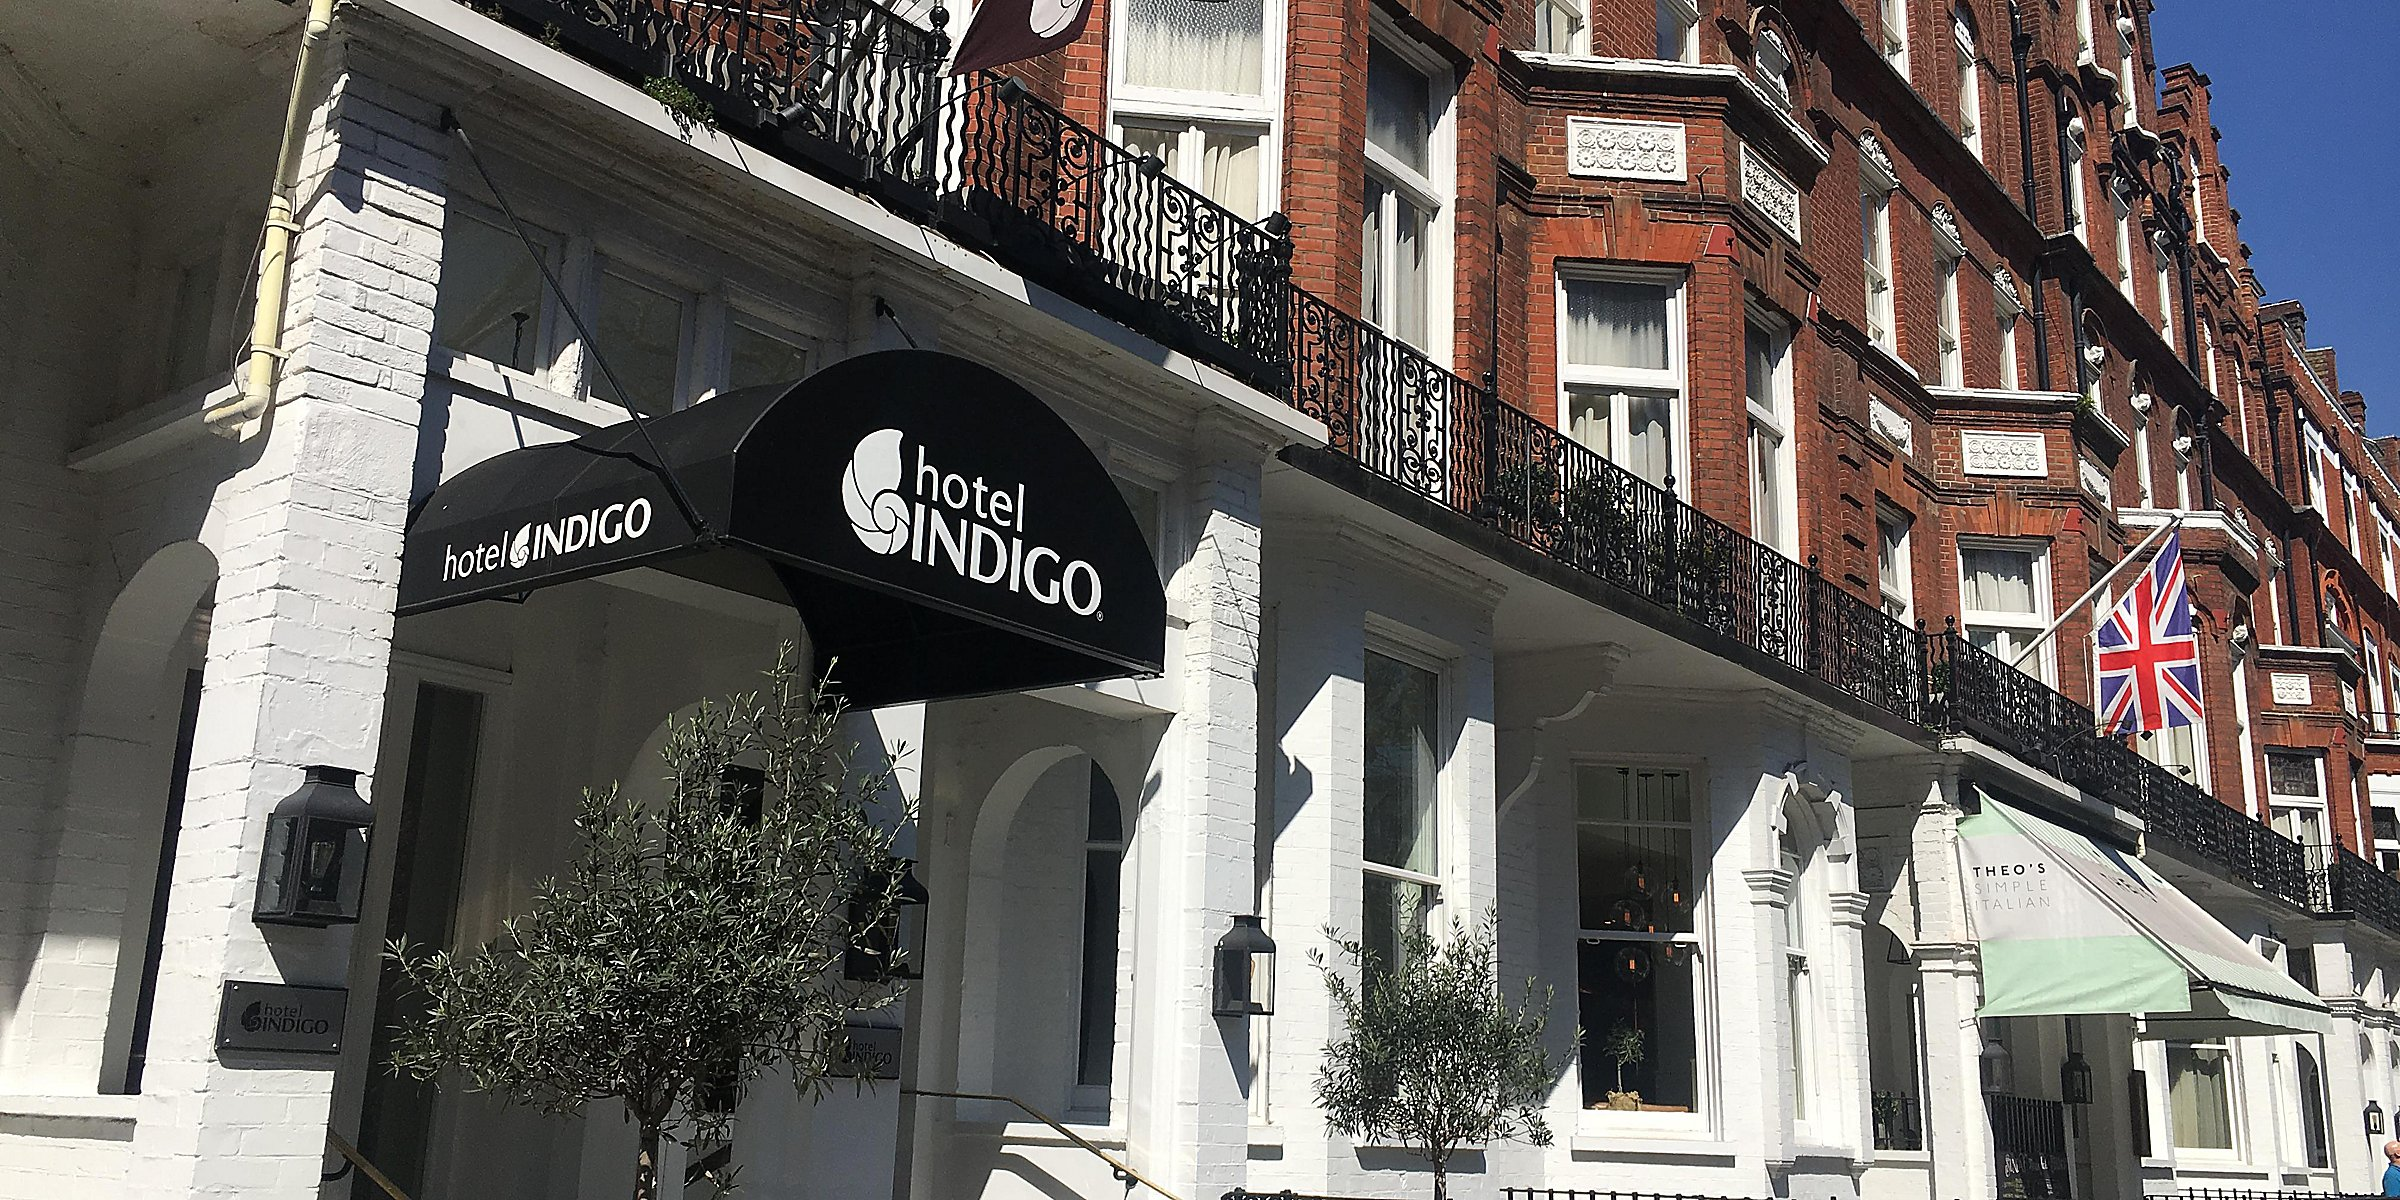 Kensington Hotel Hotel Indigo London Kensington